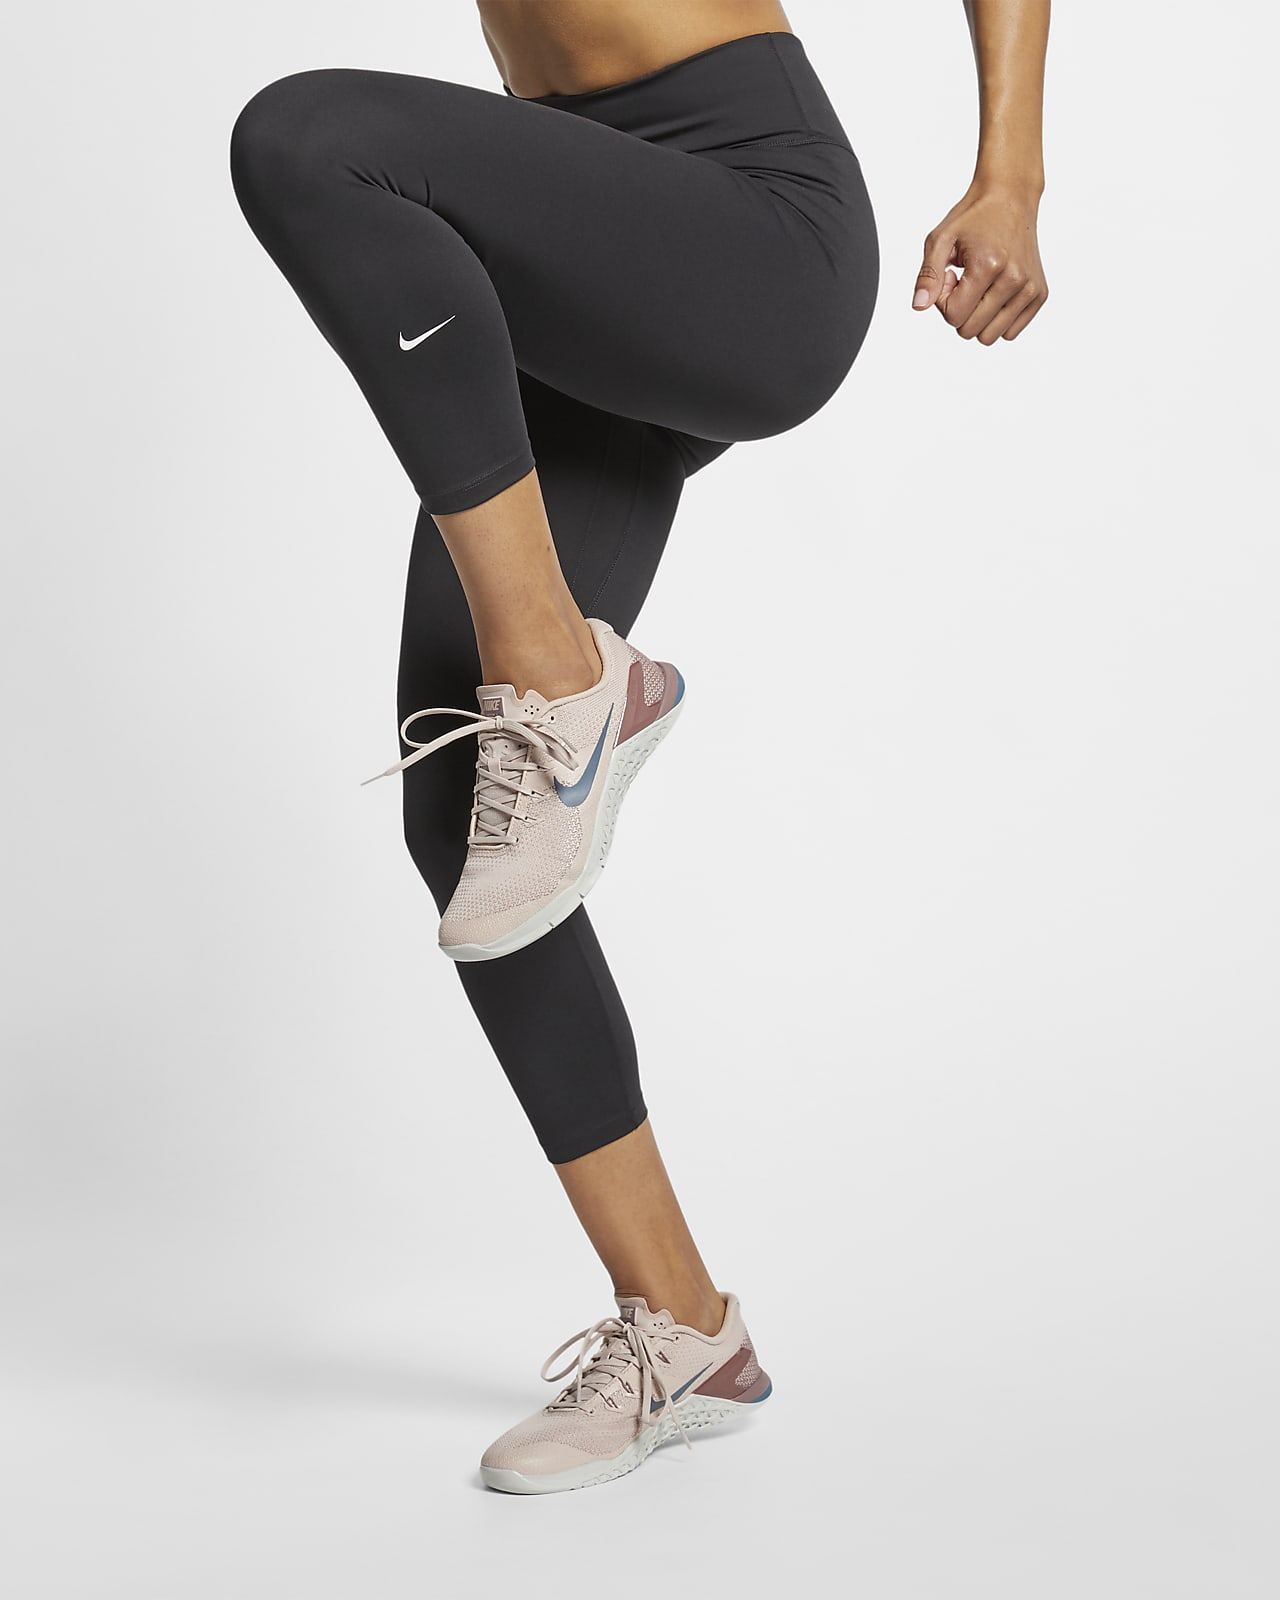 Nike One Women's Mid-Rise Crop Leggings